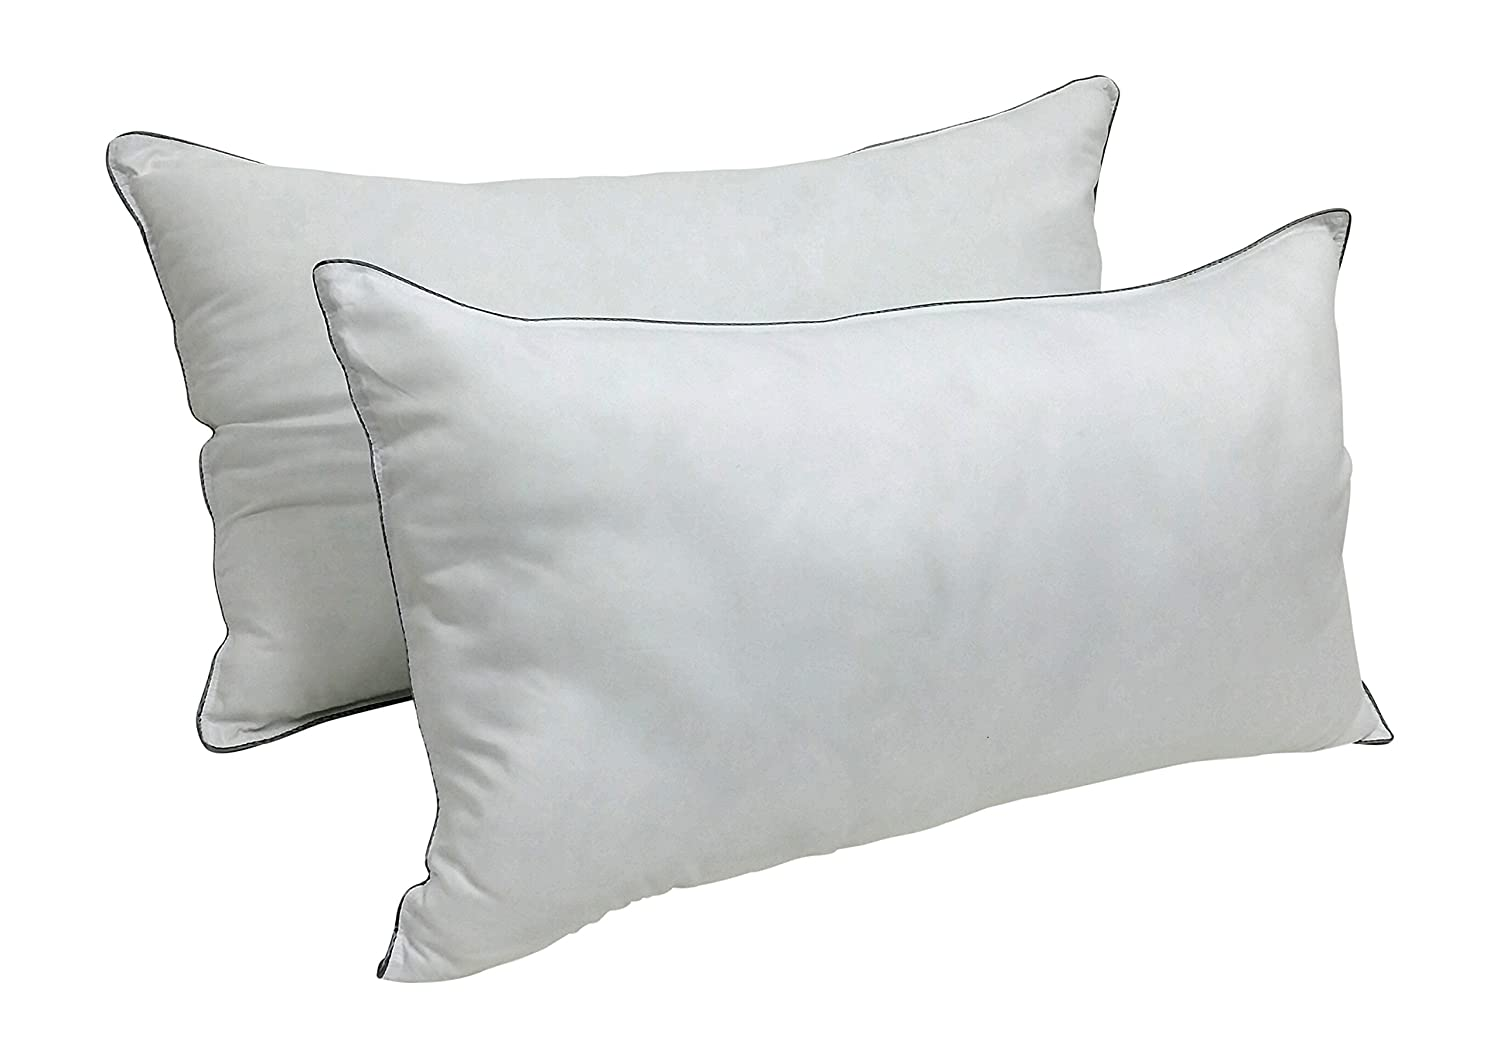 products sachi bed pillows organics protector standard for pillow